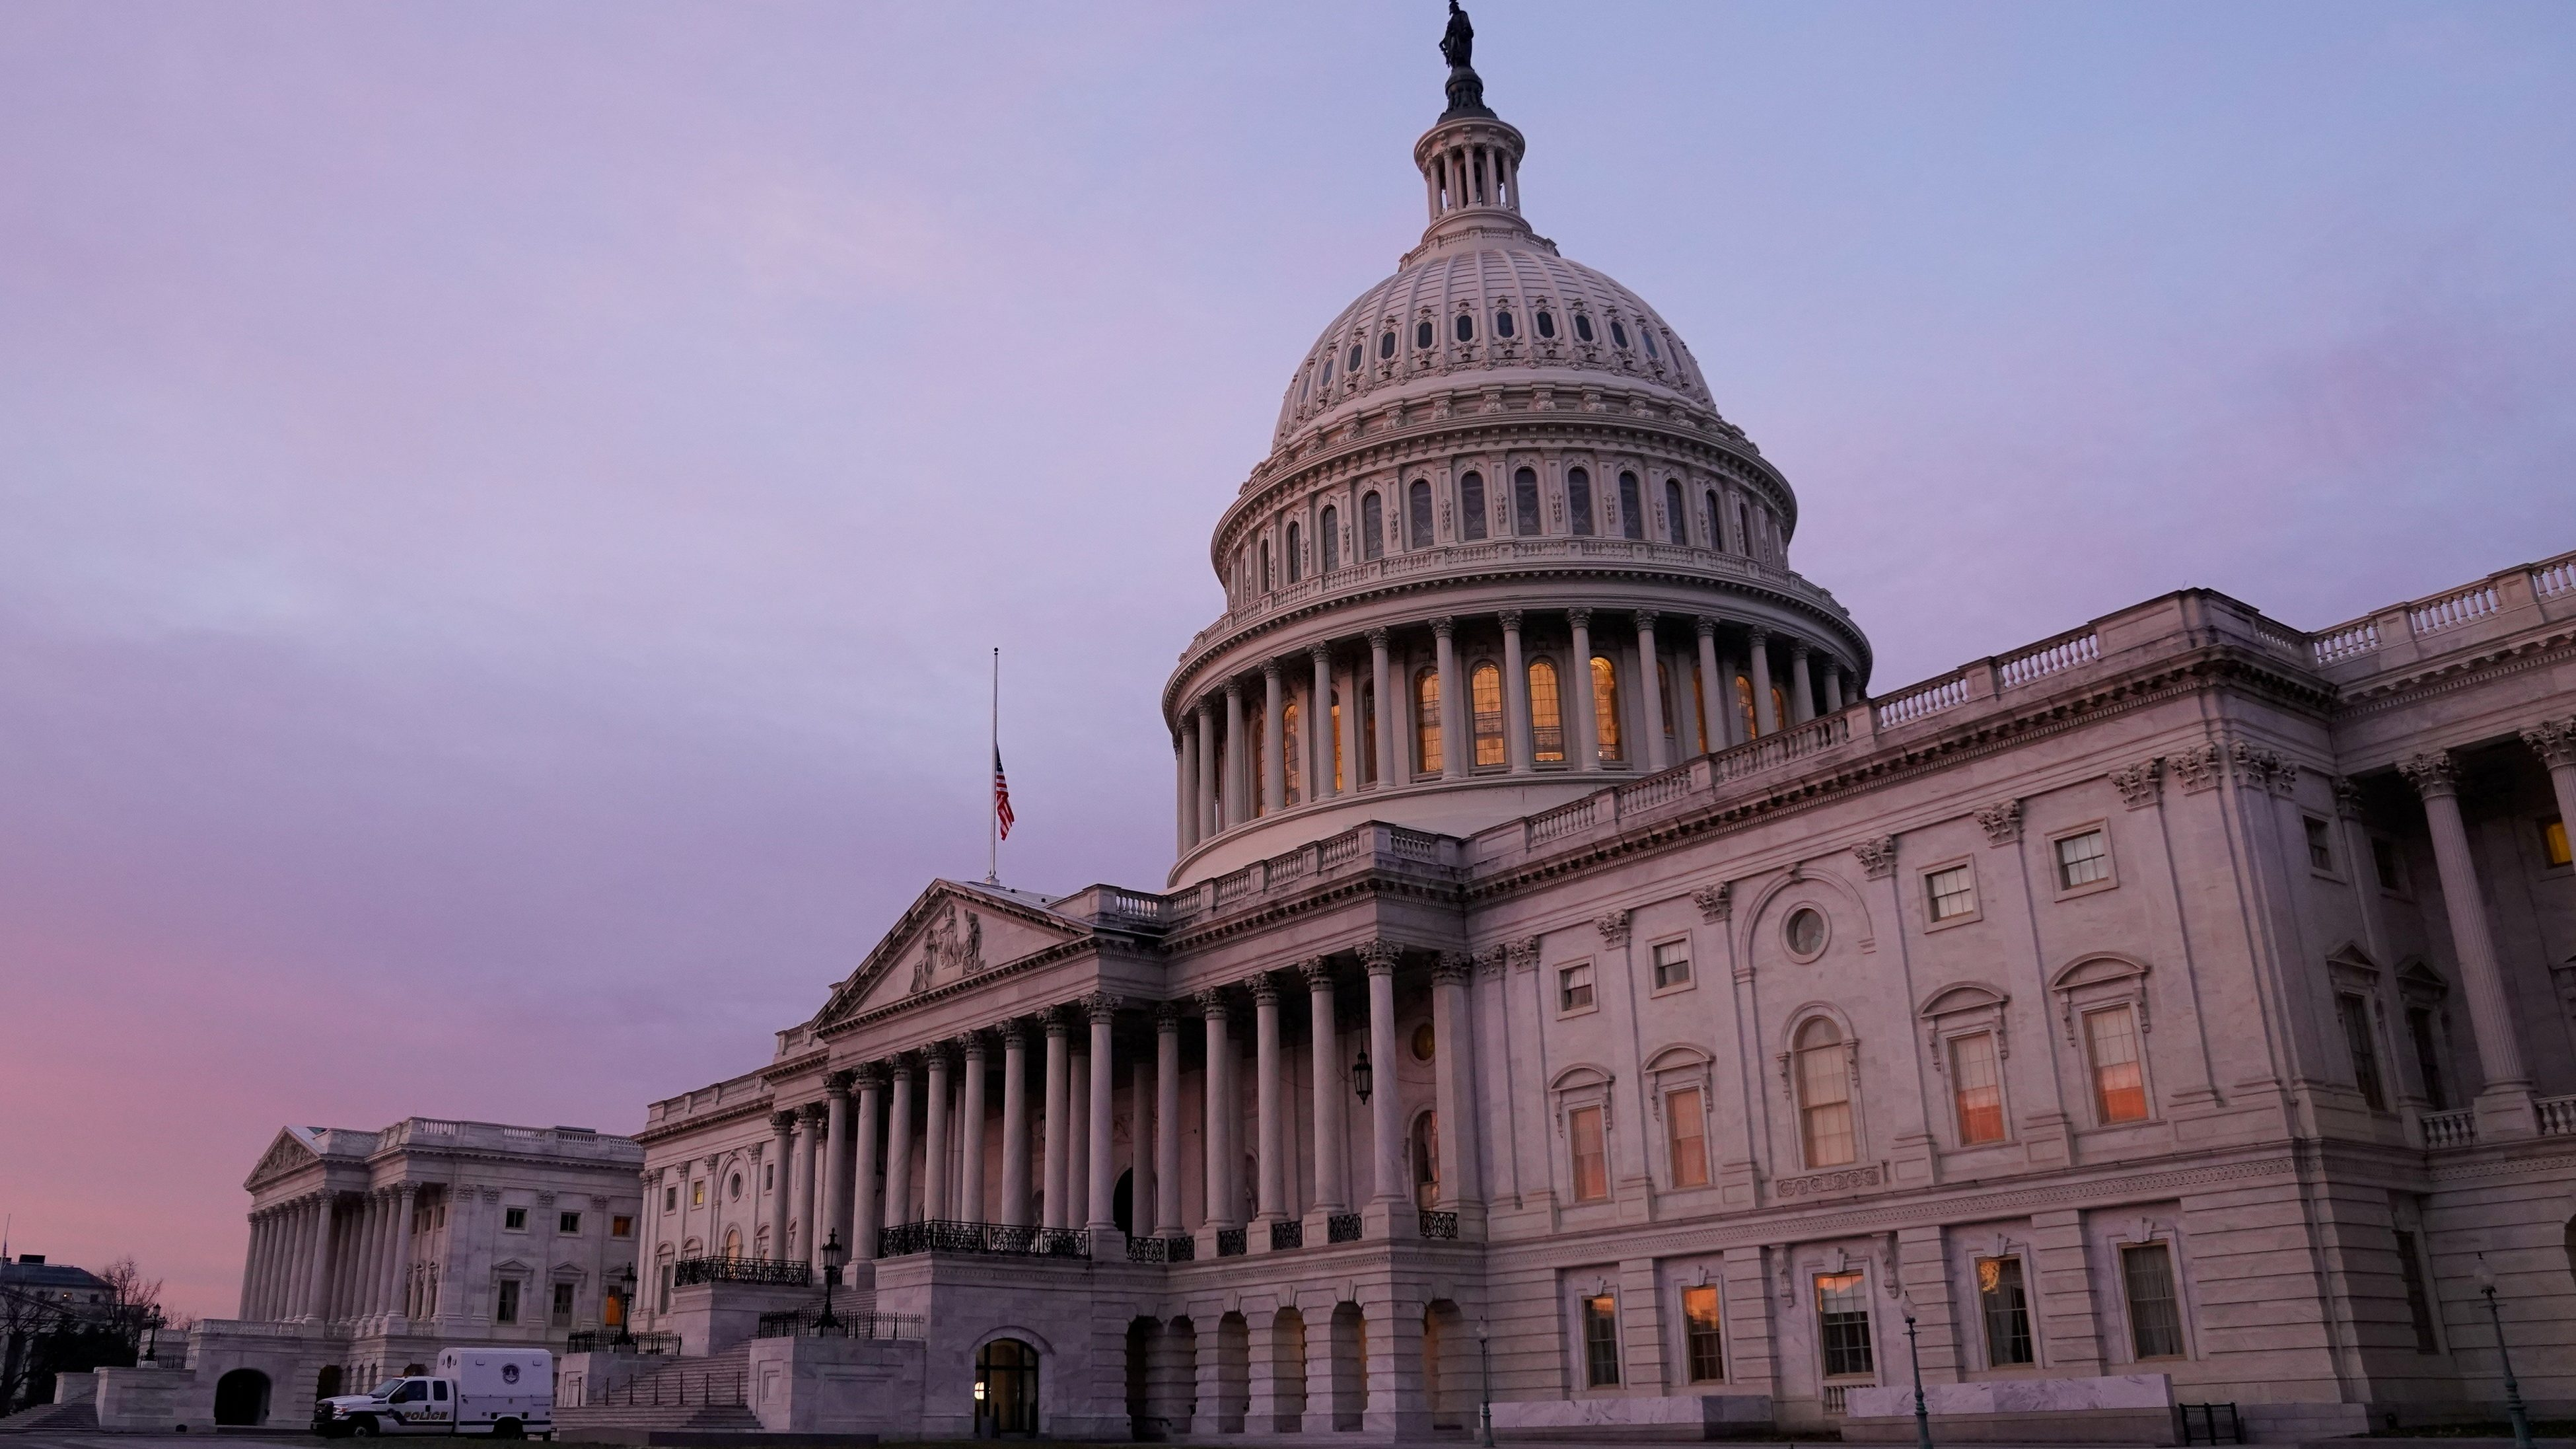 The U.S. Capitol is seen at sunrise.